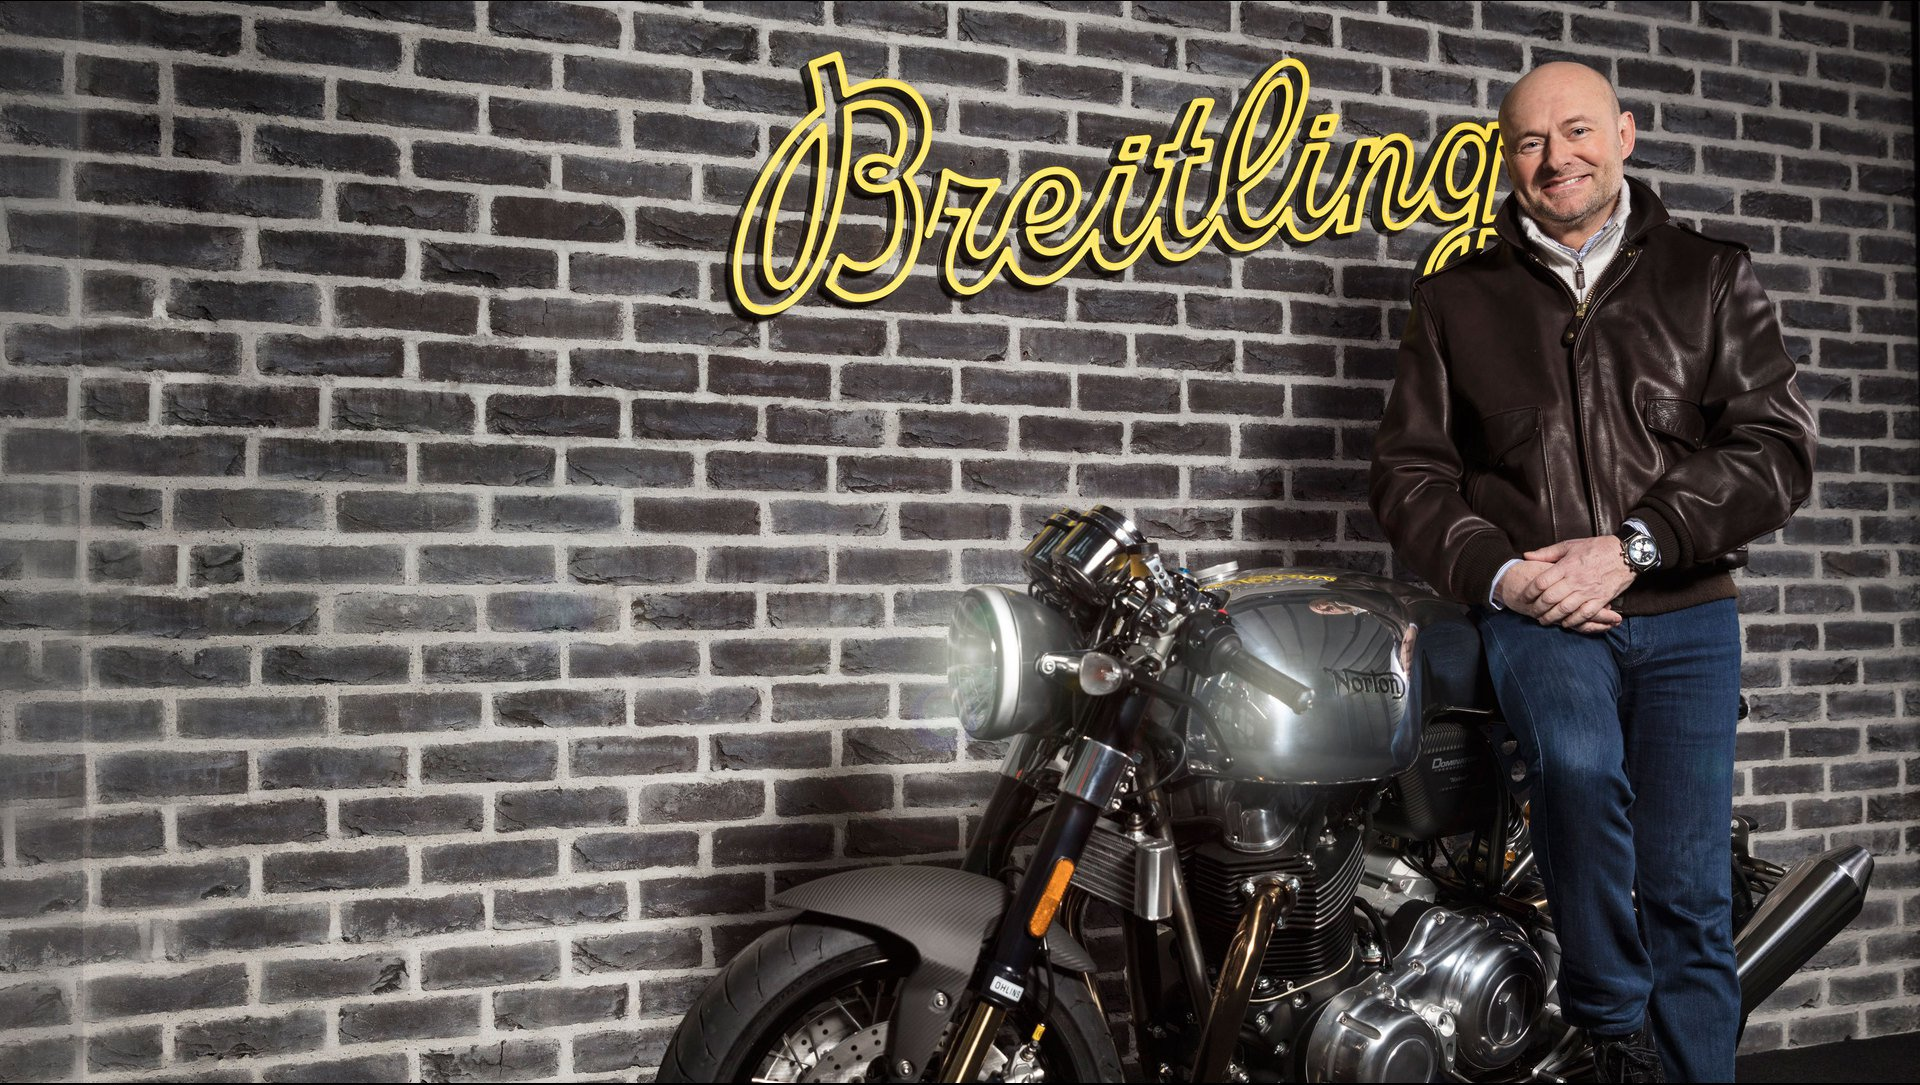 Breitling & Norton Motorcycles – Two Global Lifestyle Brands Announce Partnership